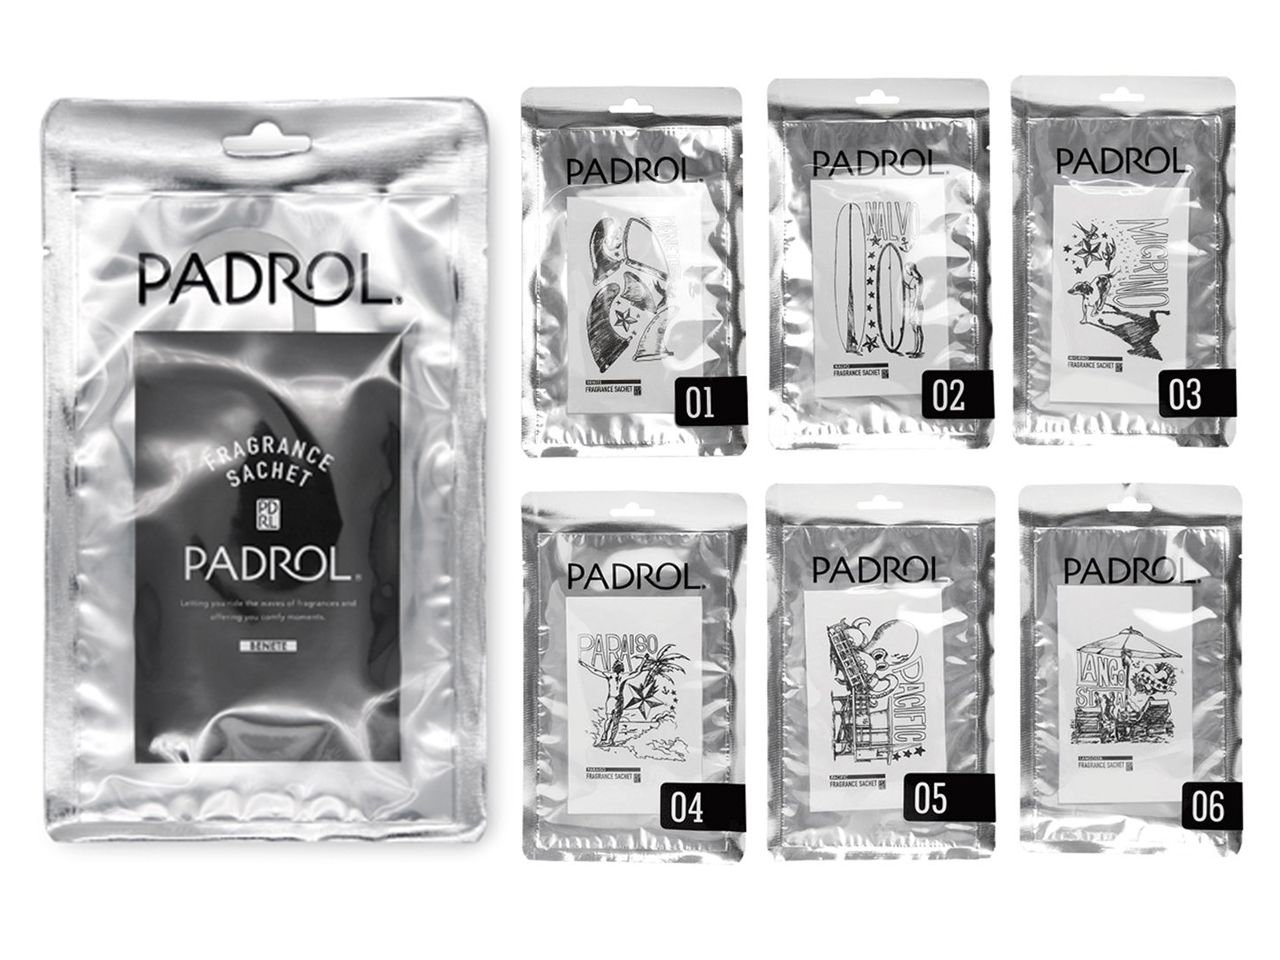 PADROL Fragrancesachet